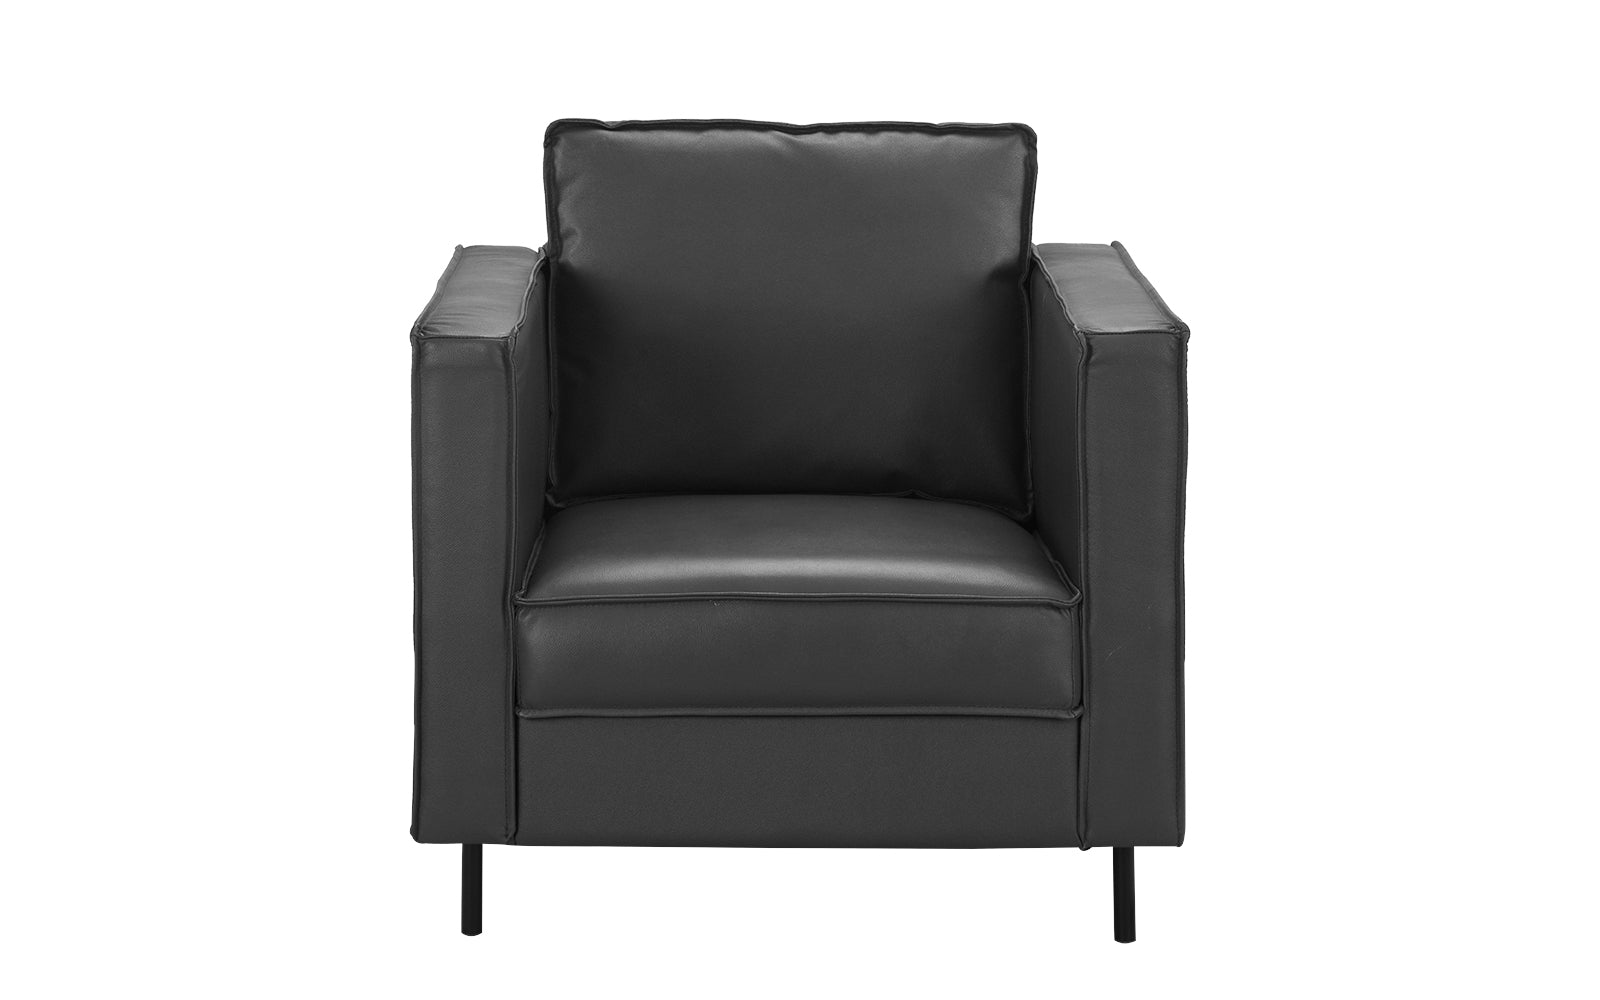 Leather Armchair Image